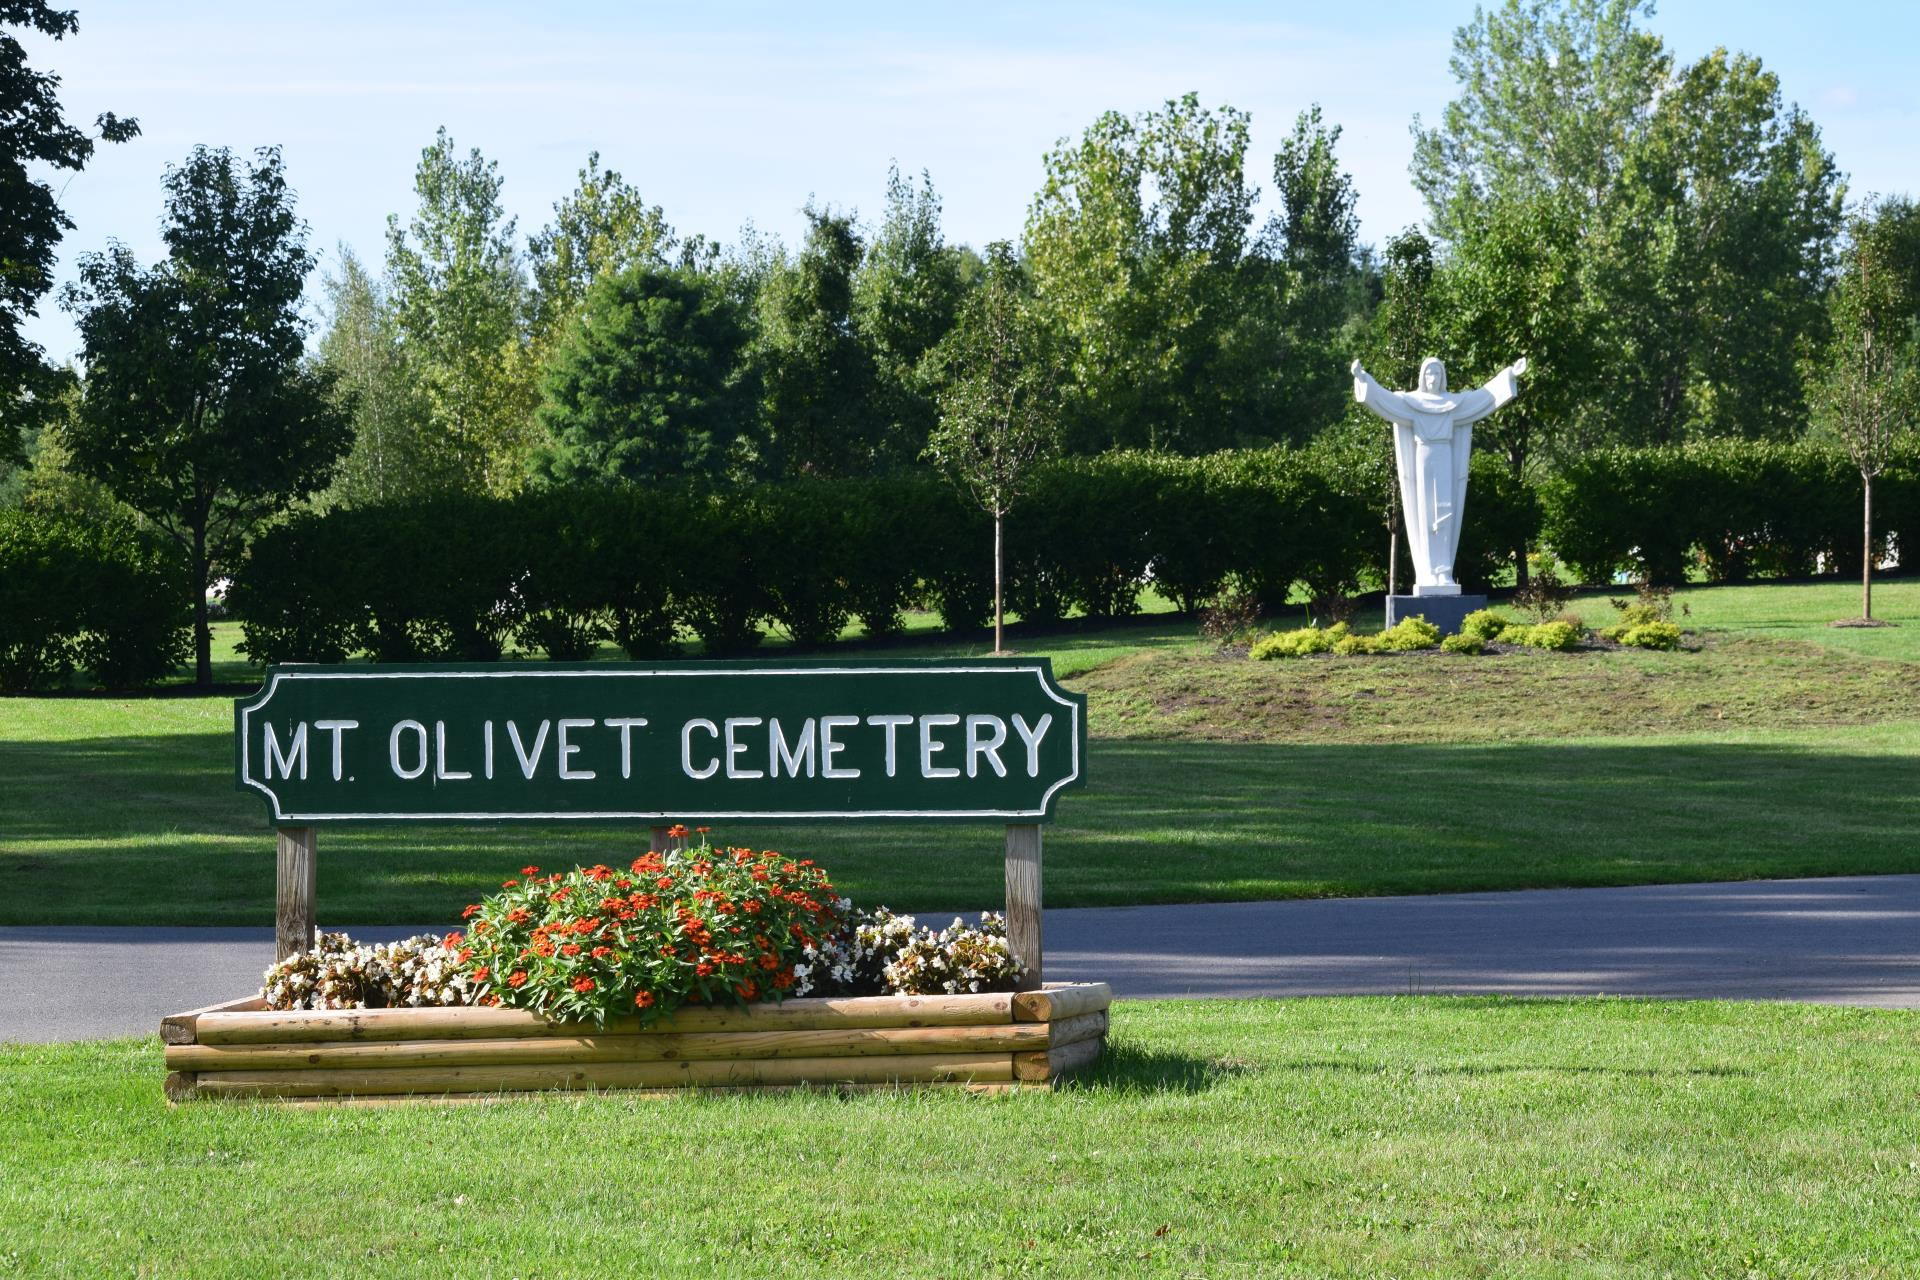 Entrance sign to Mount Olivet Cemetery